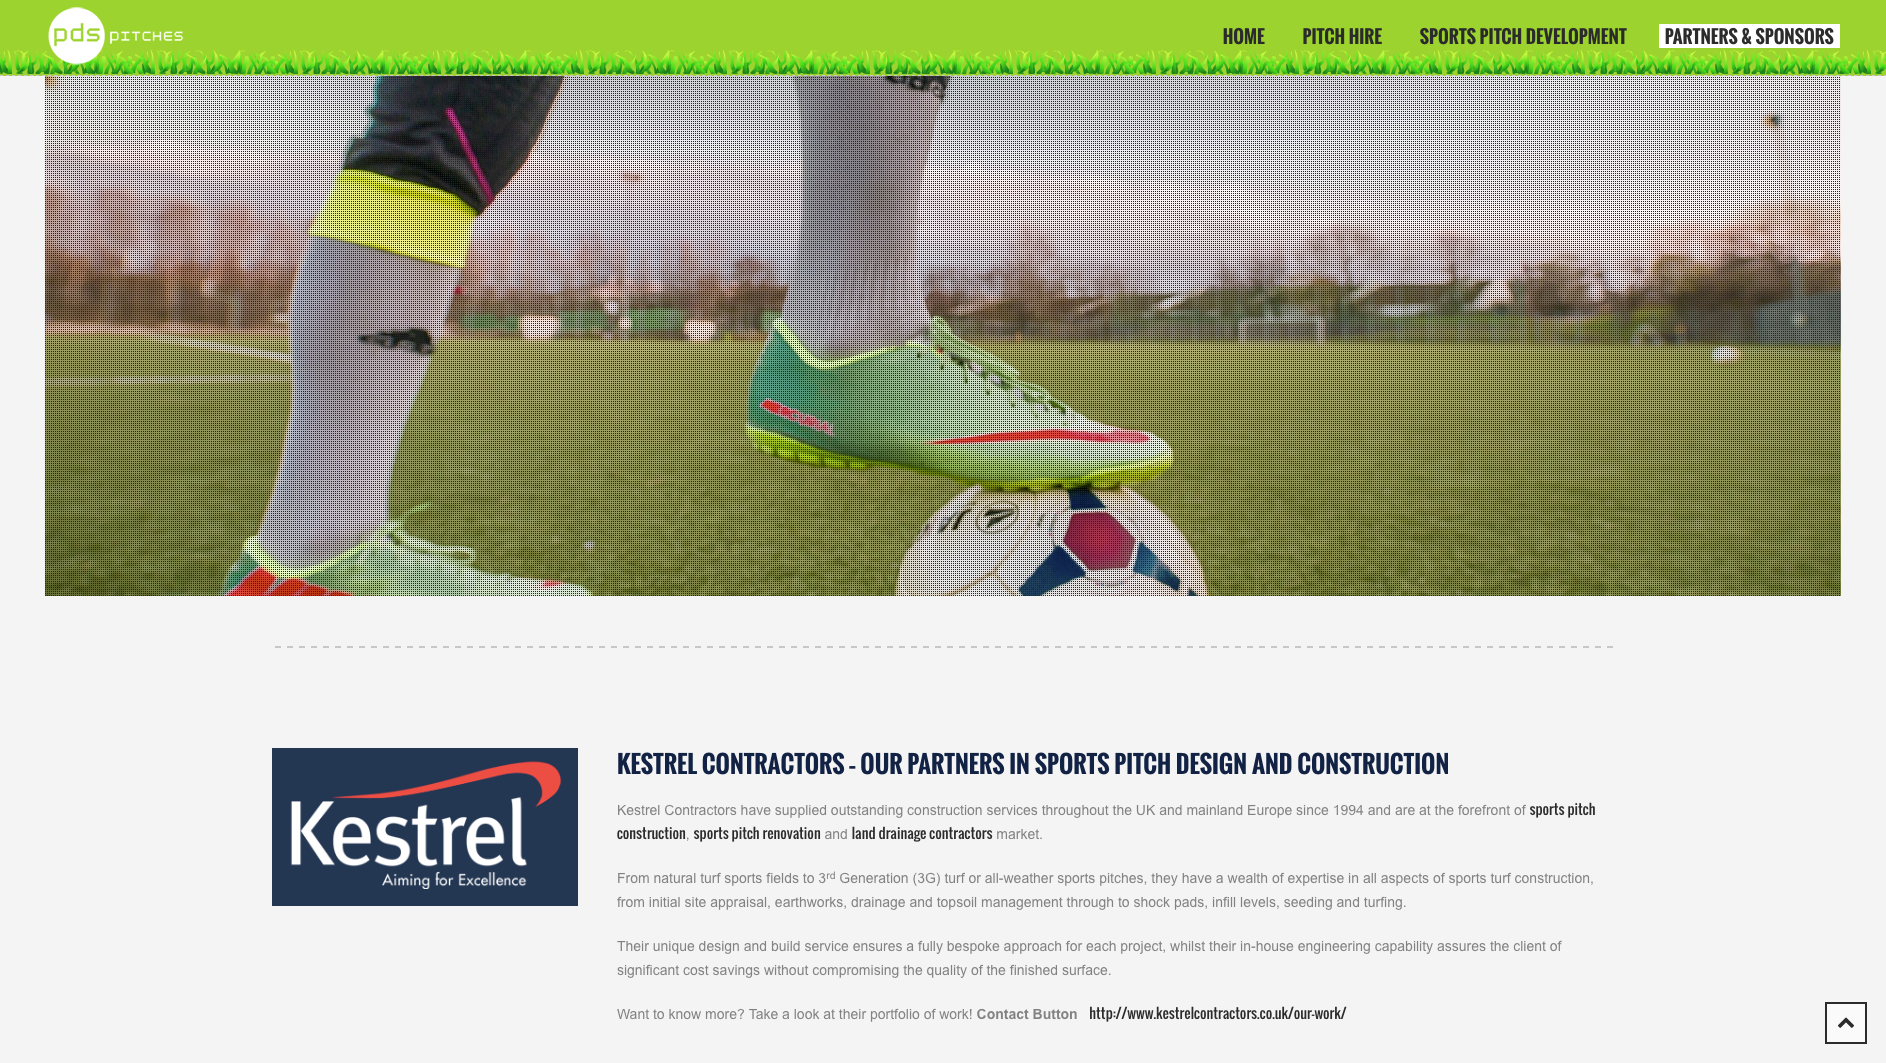 Partners and Sponsors page design for PDS Pitches